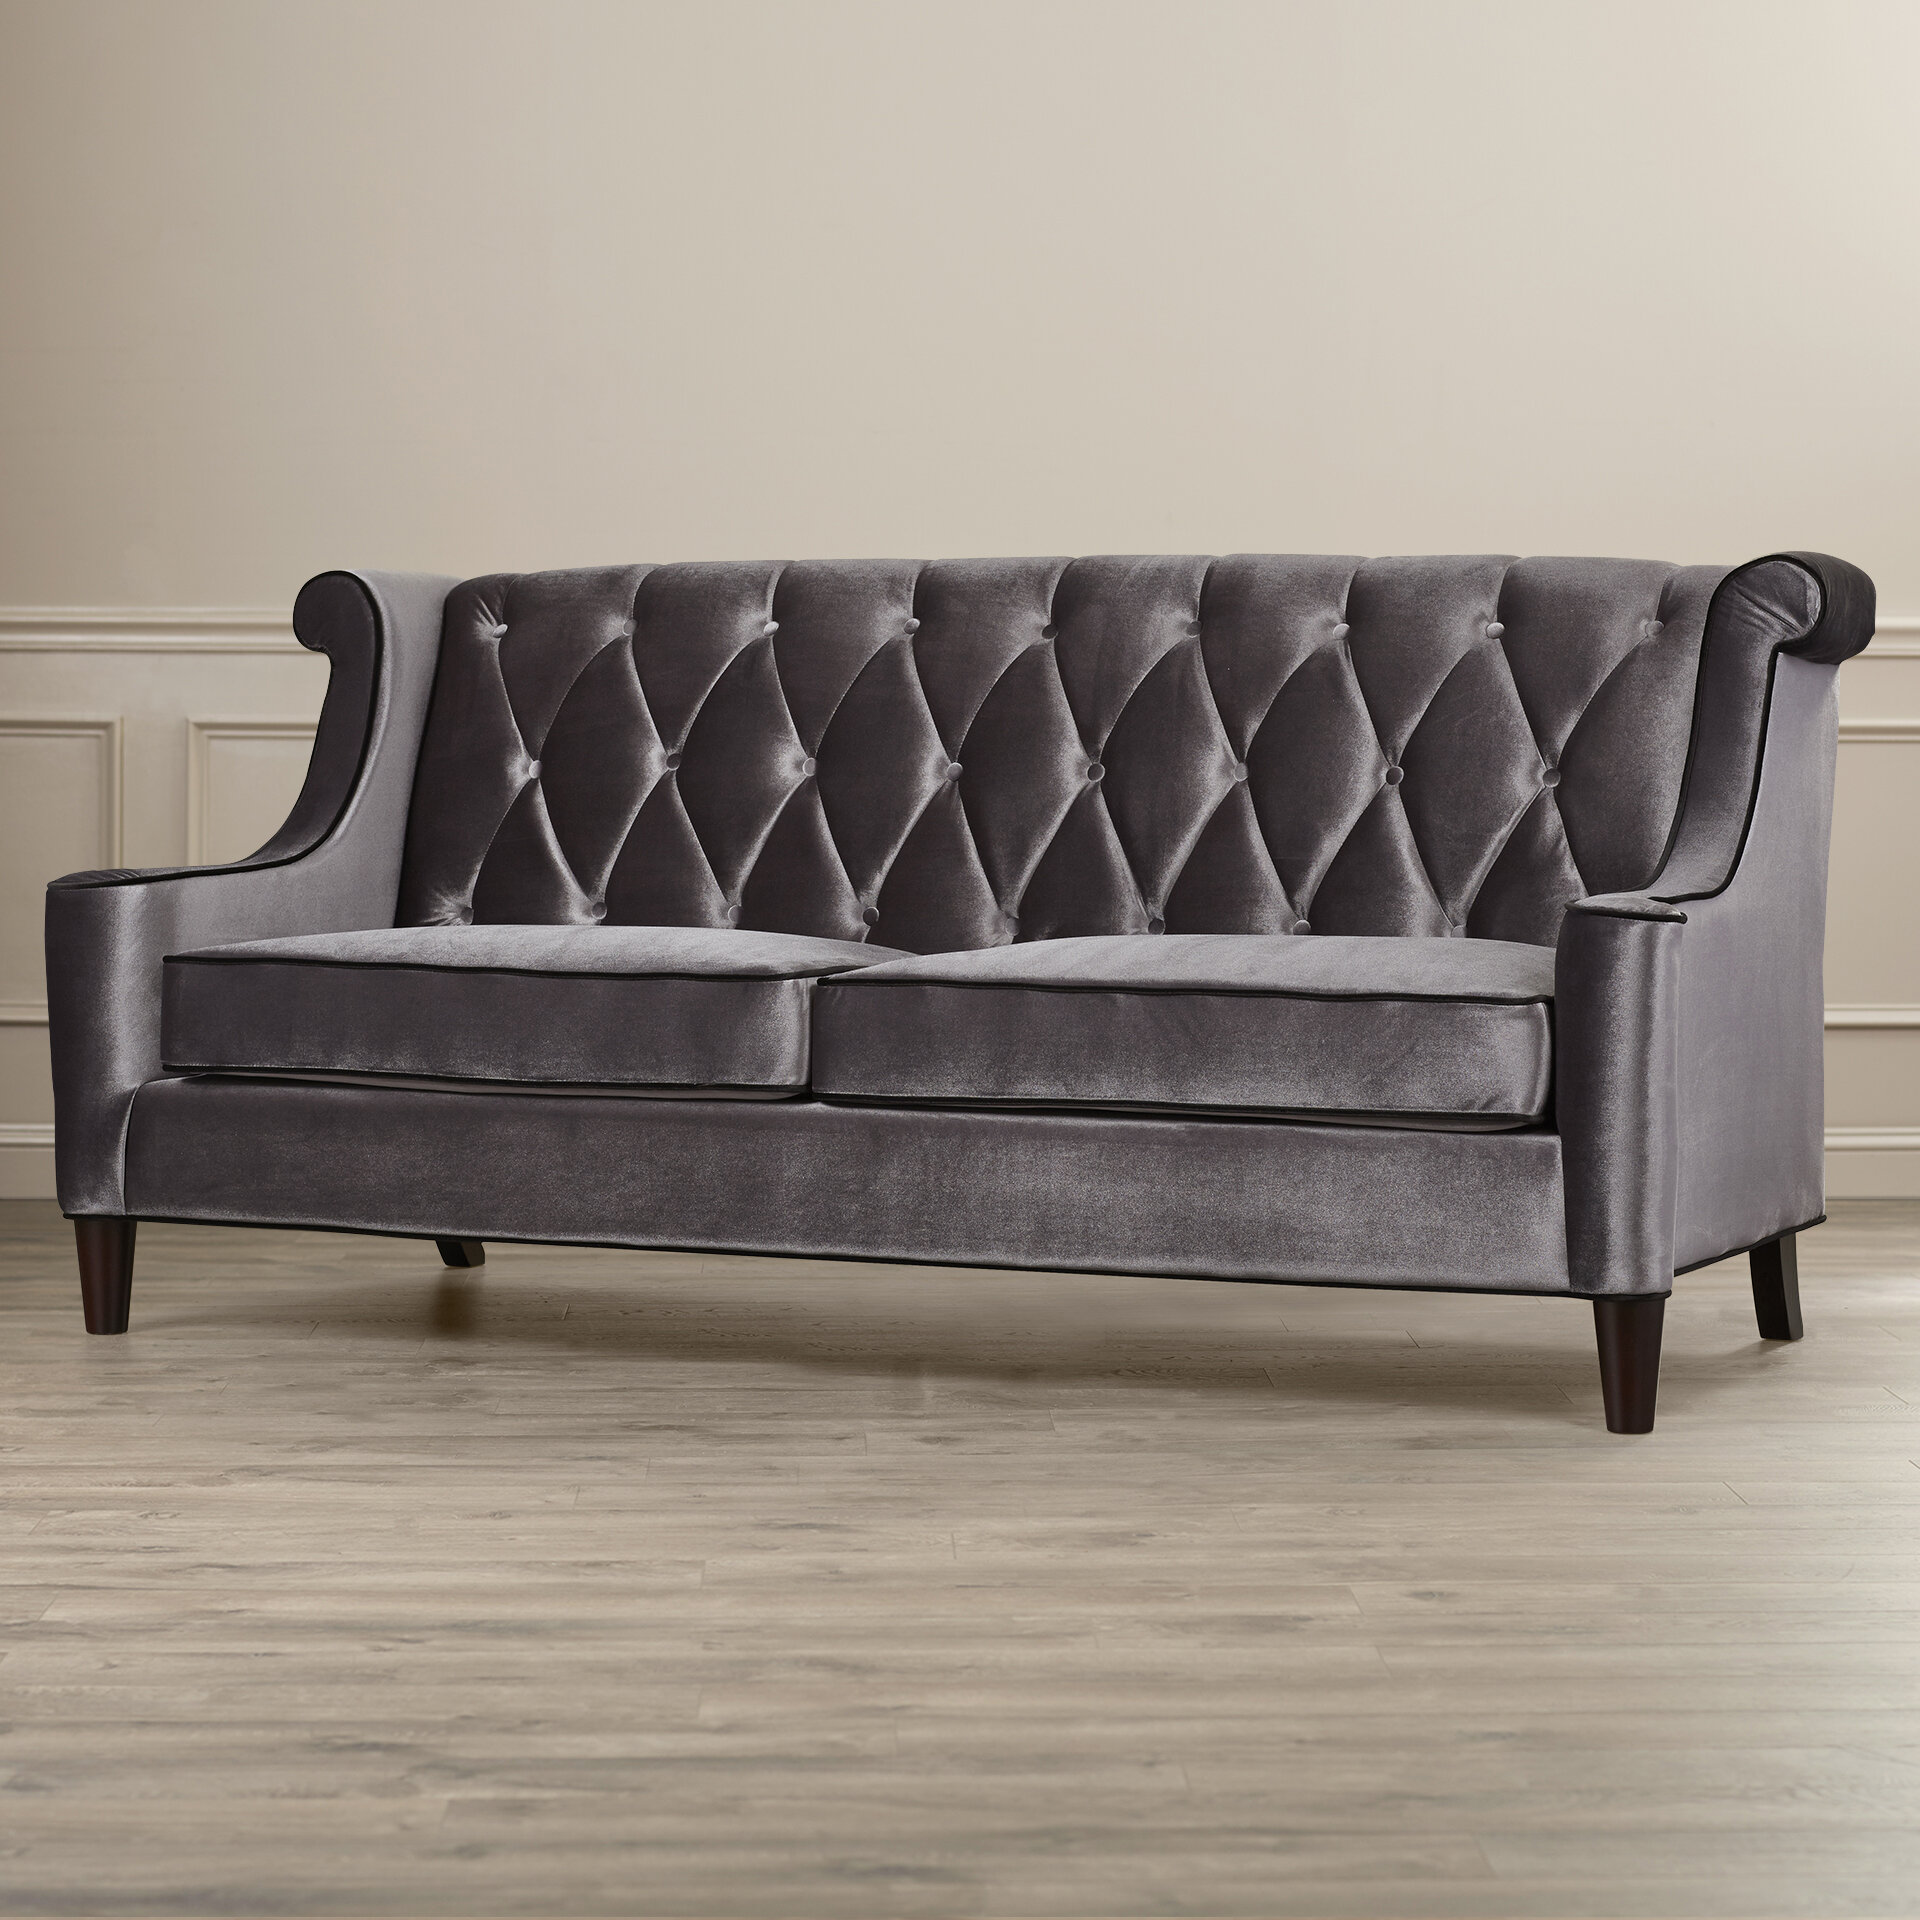 Willa Arlo Interiors Carressa Velvet Sofa U0026 Reviews | Wayfair